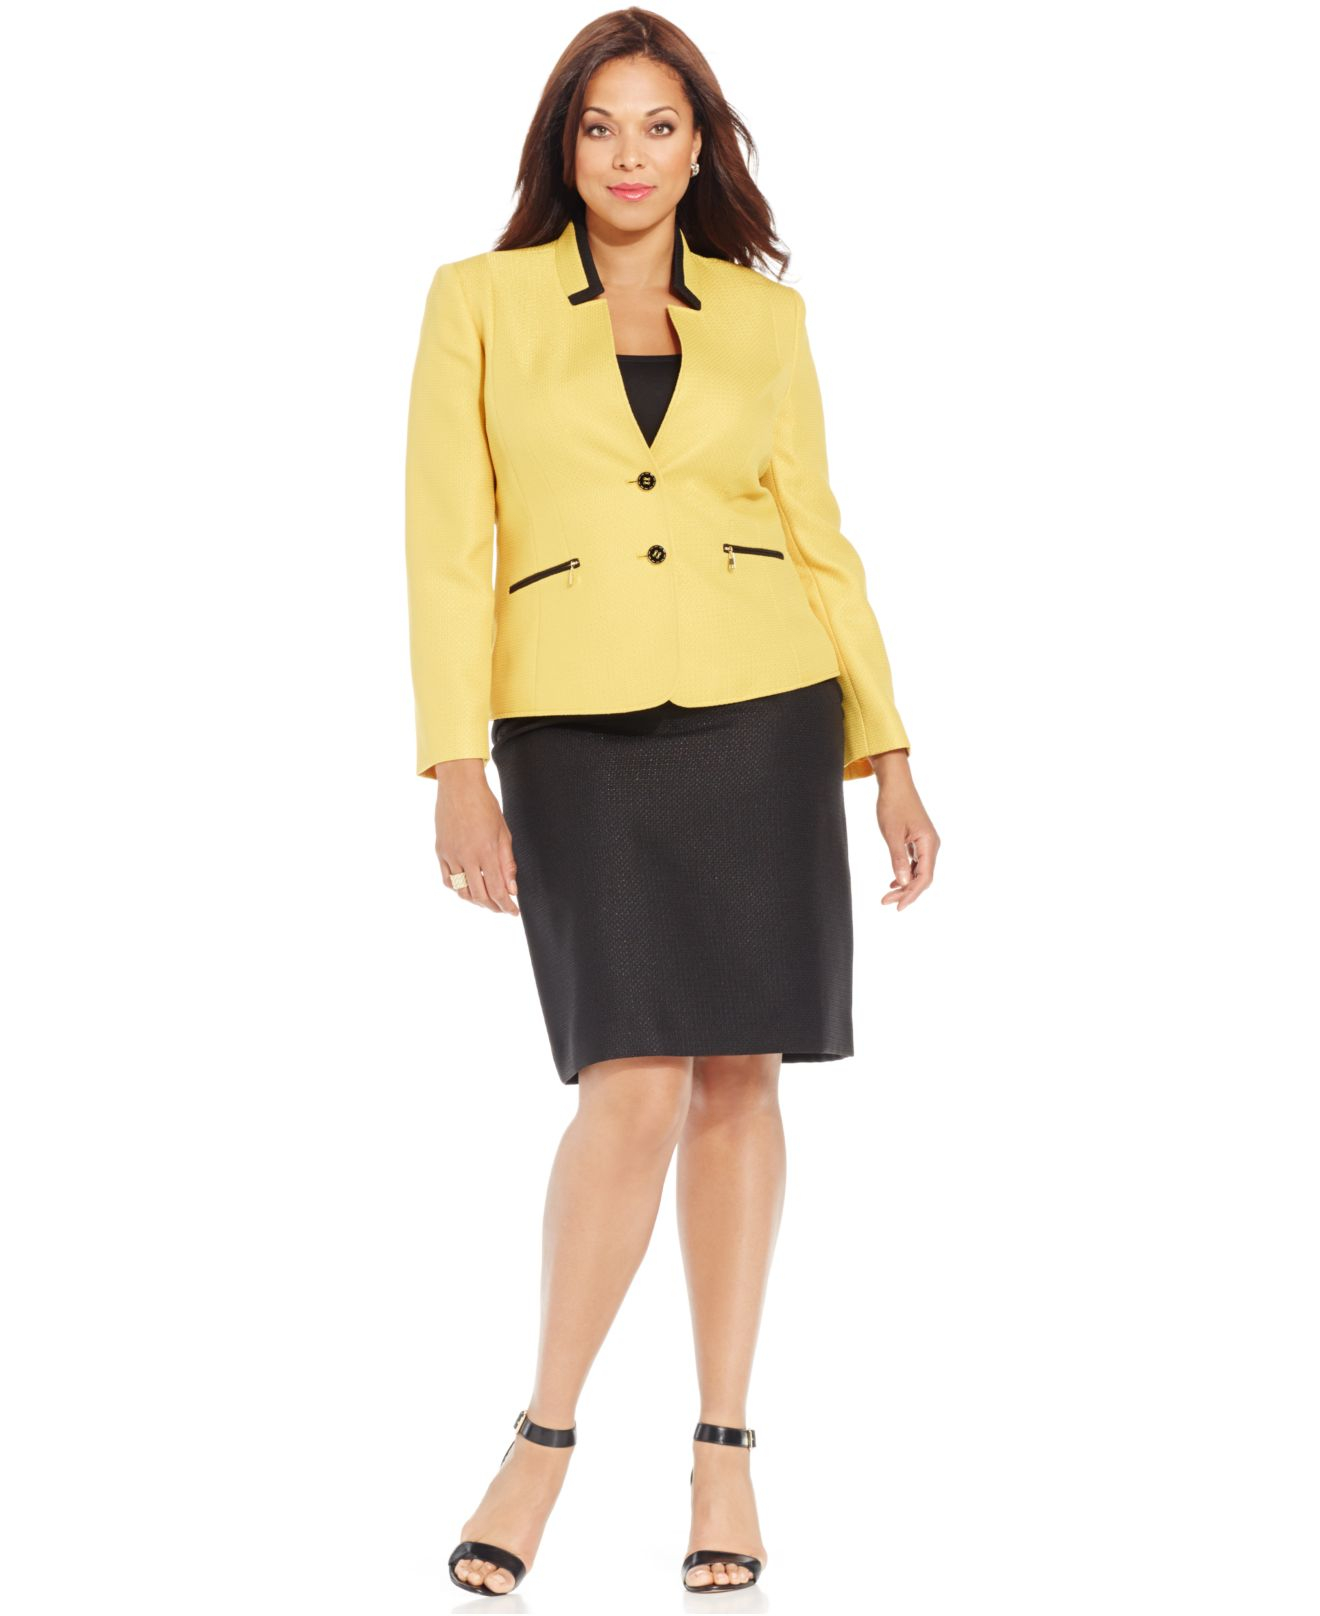 Lyst Tahari Plus Size Two Button Colorblocked Skirt Suit In Black